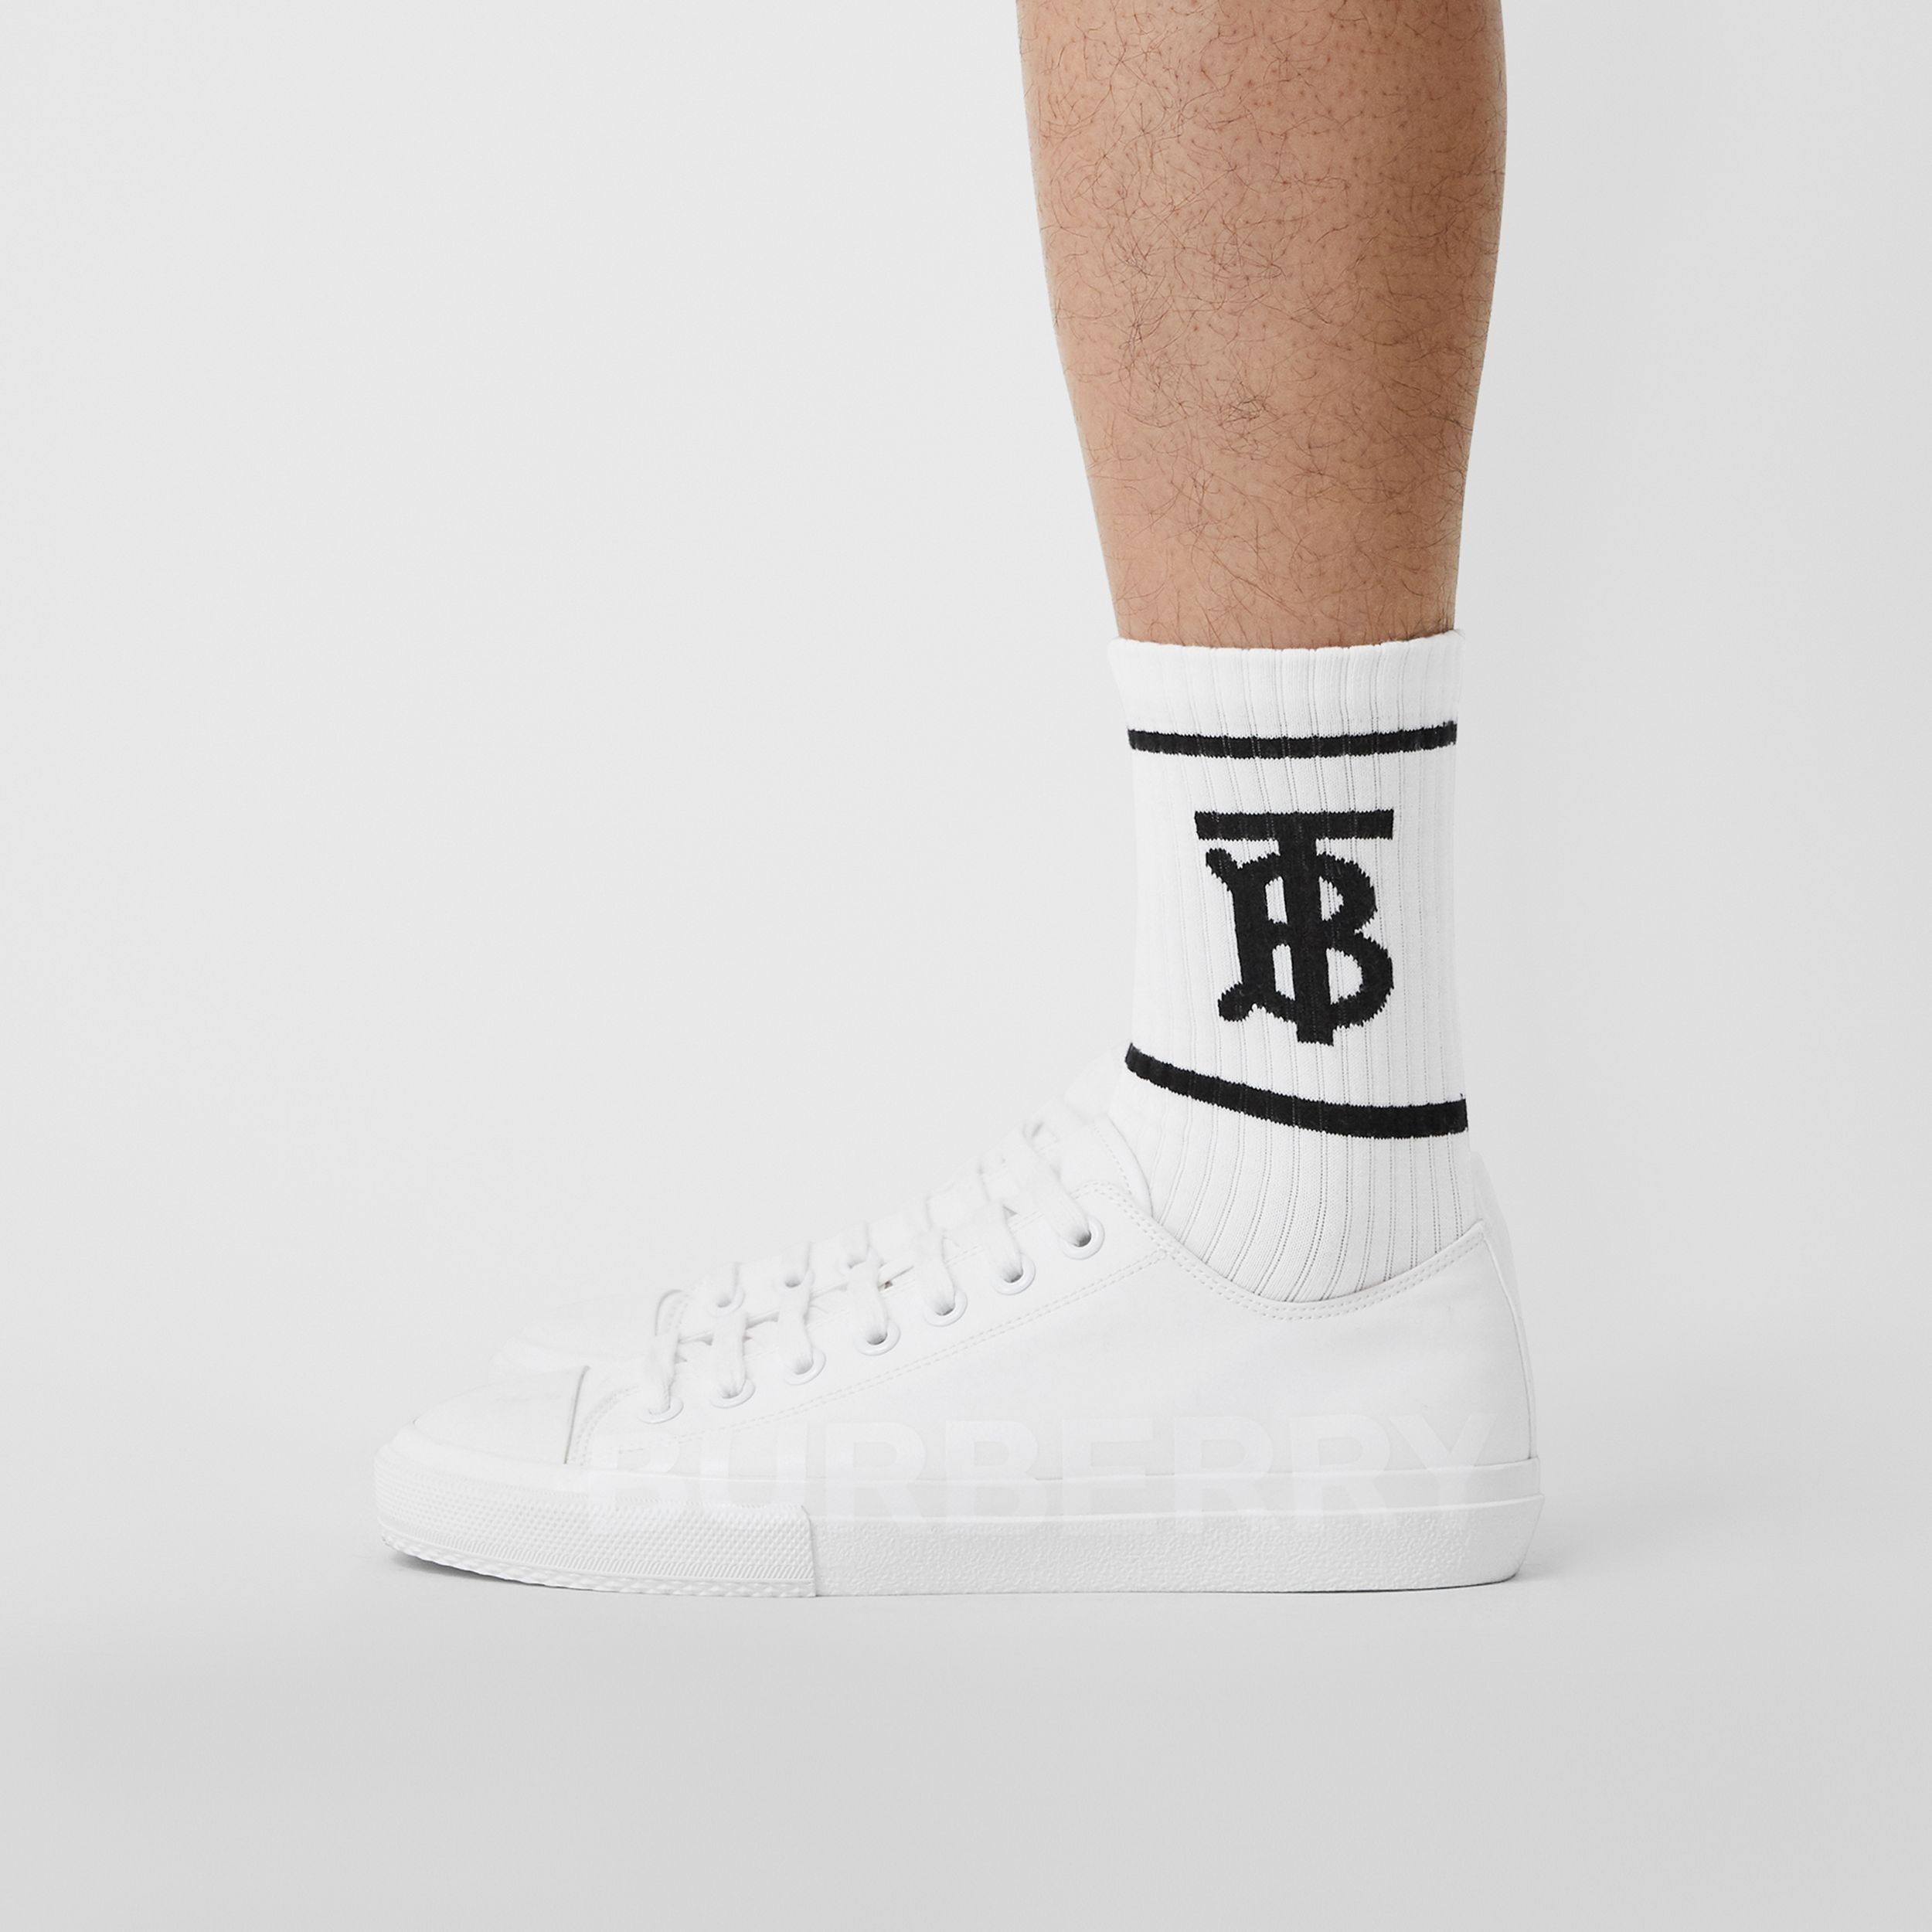 Monogram Motif Intarsia Socks in White | Burberry - 4